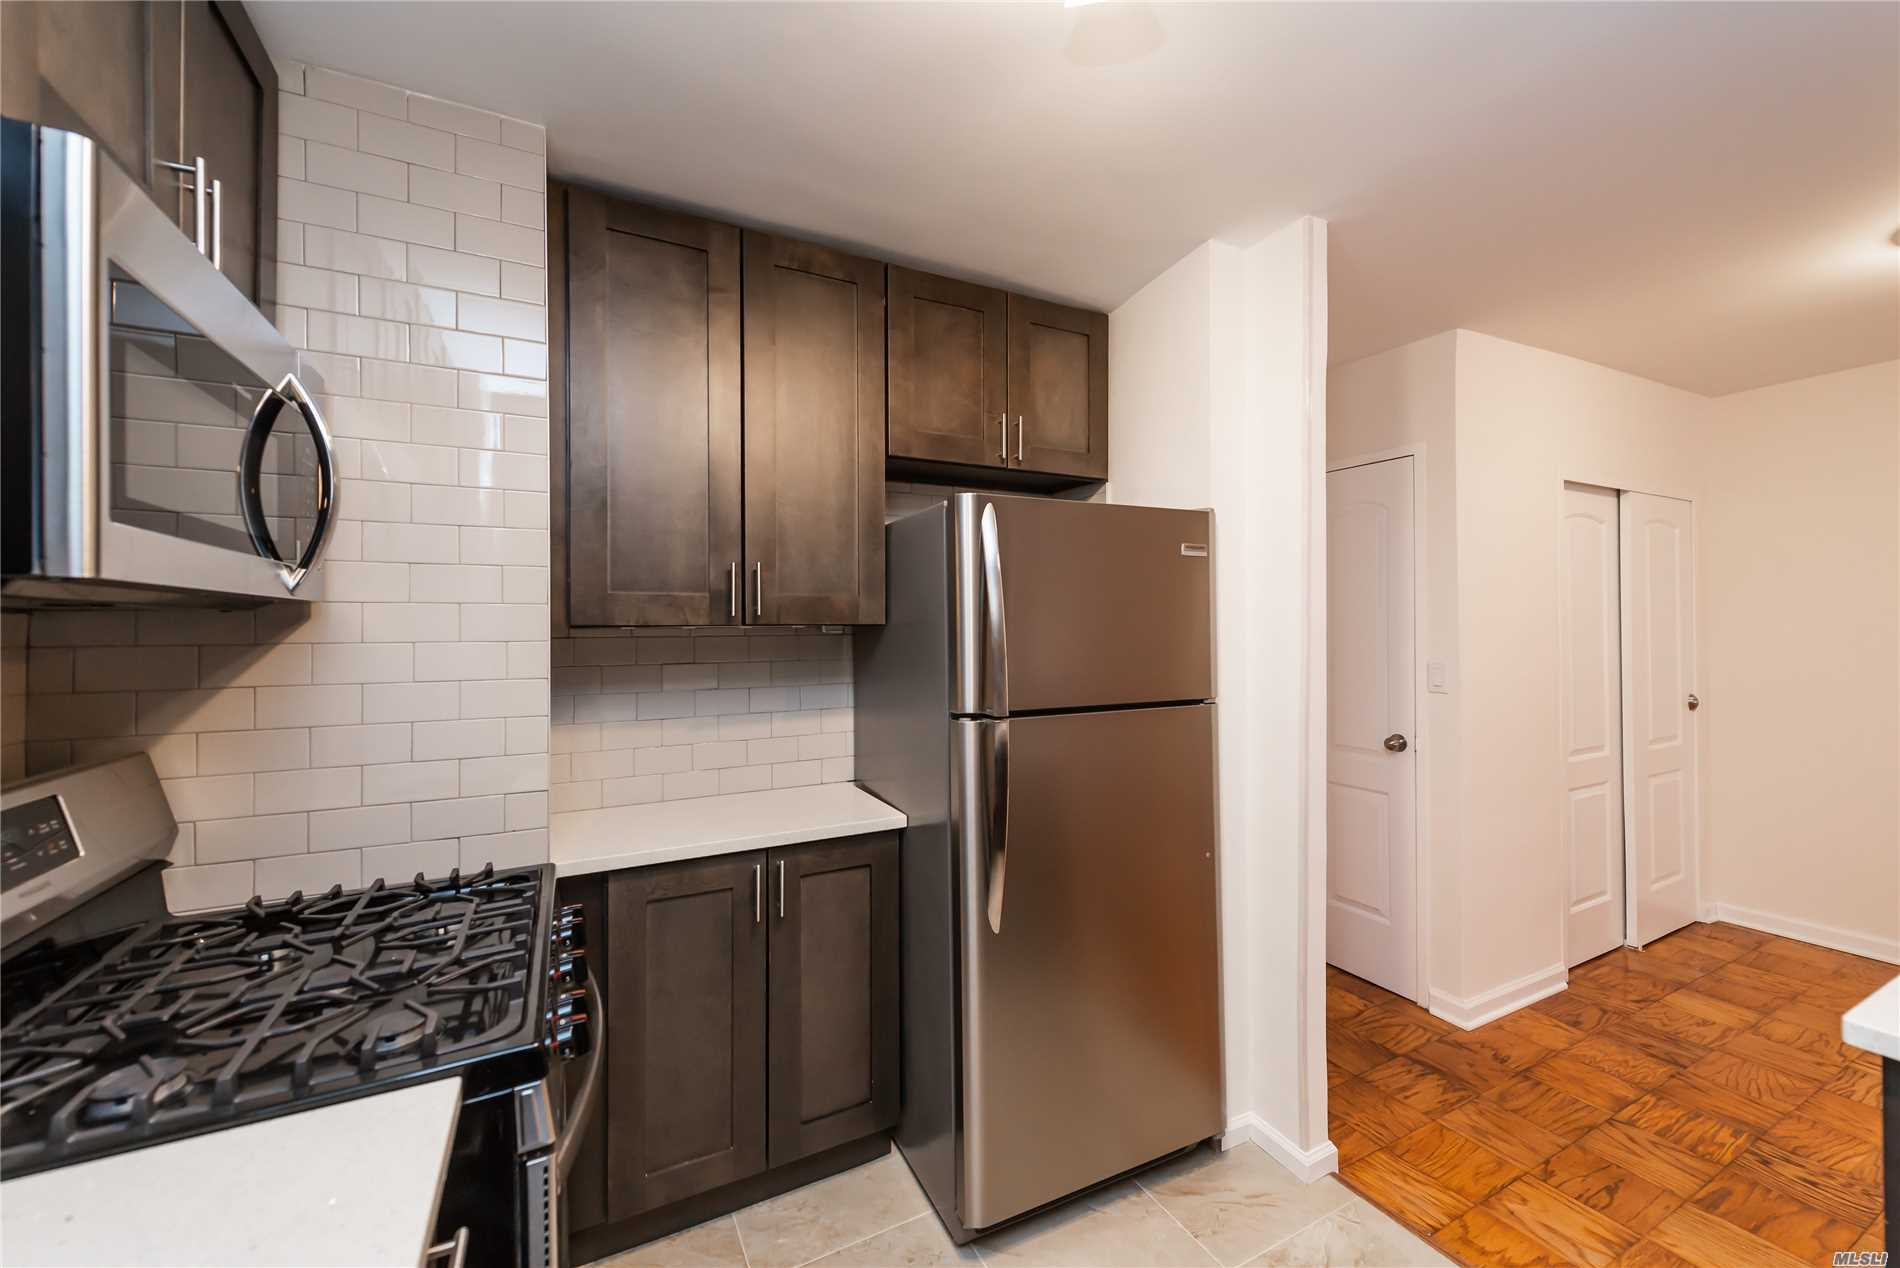 1 bedroom, 1 bath renovated apartment in Flushing